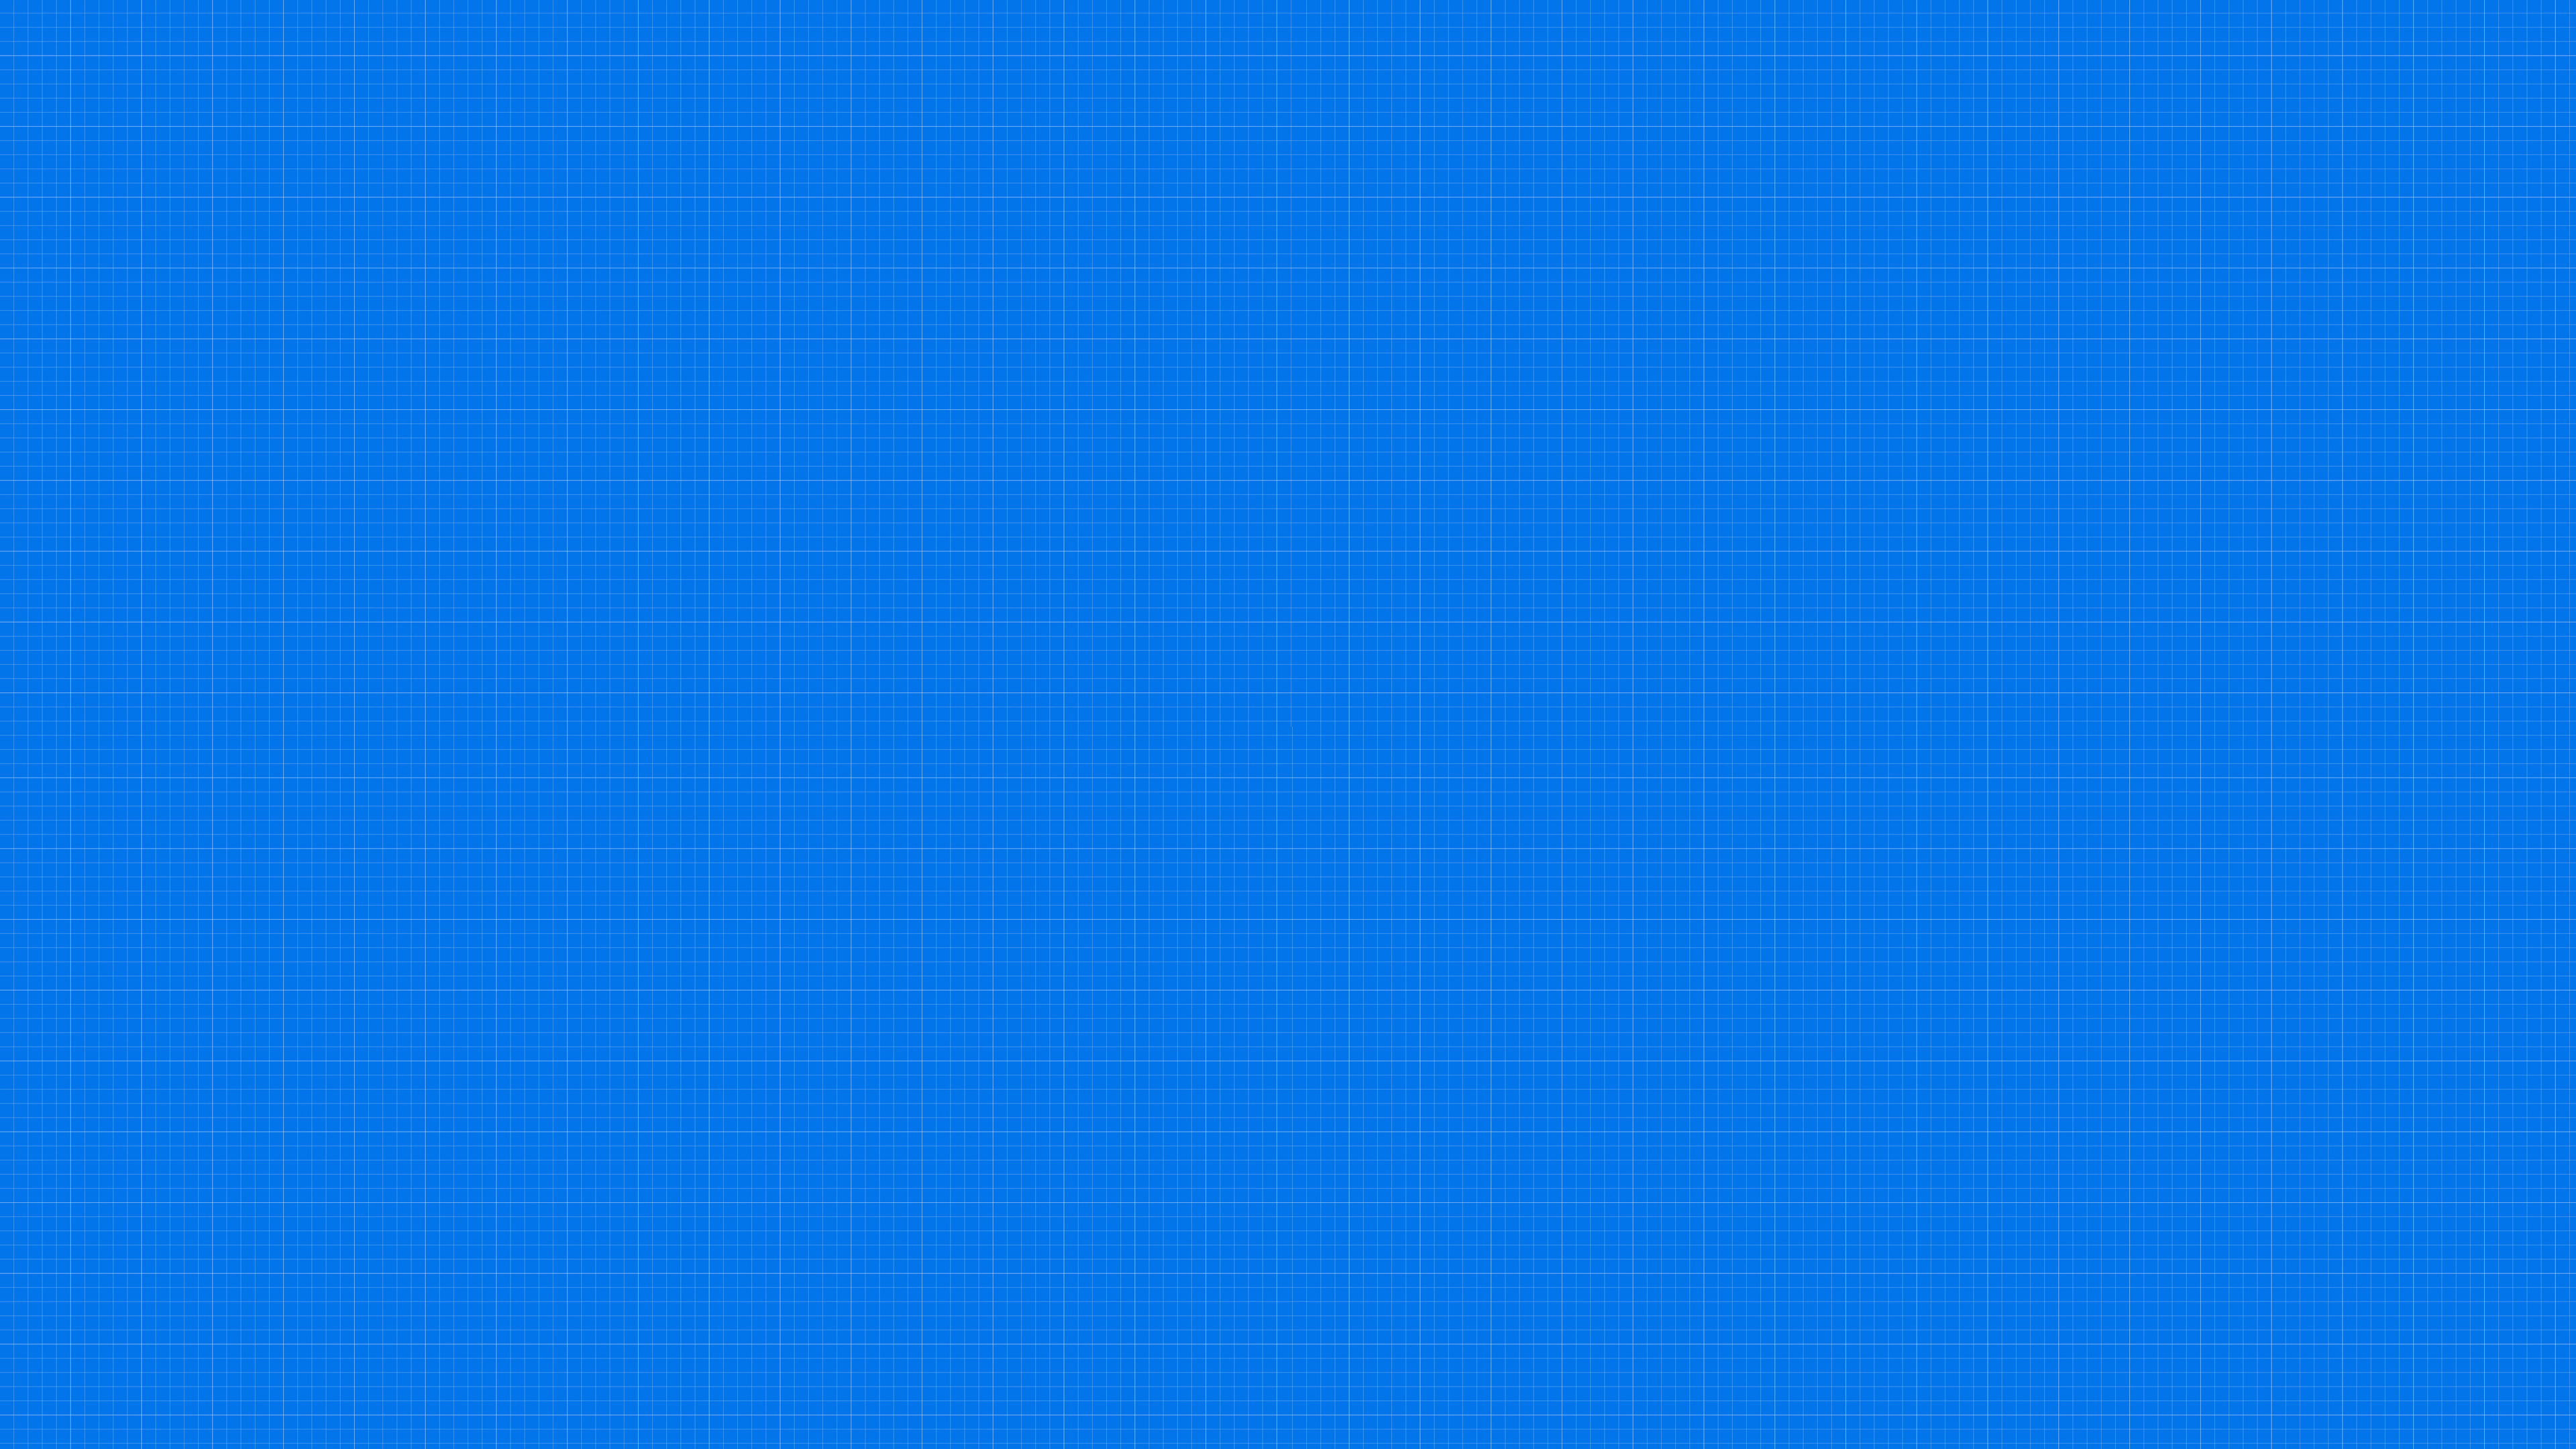 Iphone X Blueprint Wallpaper Blank Blueprint Background 46 Pictures